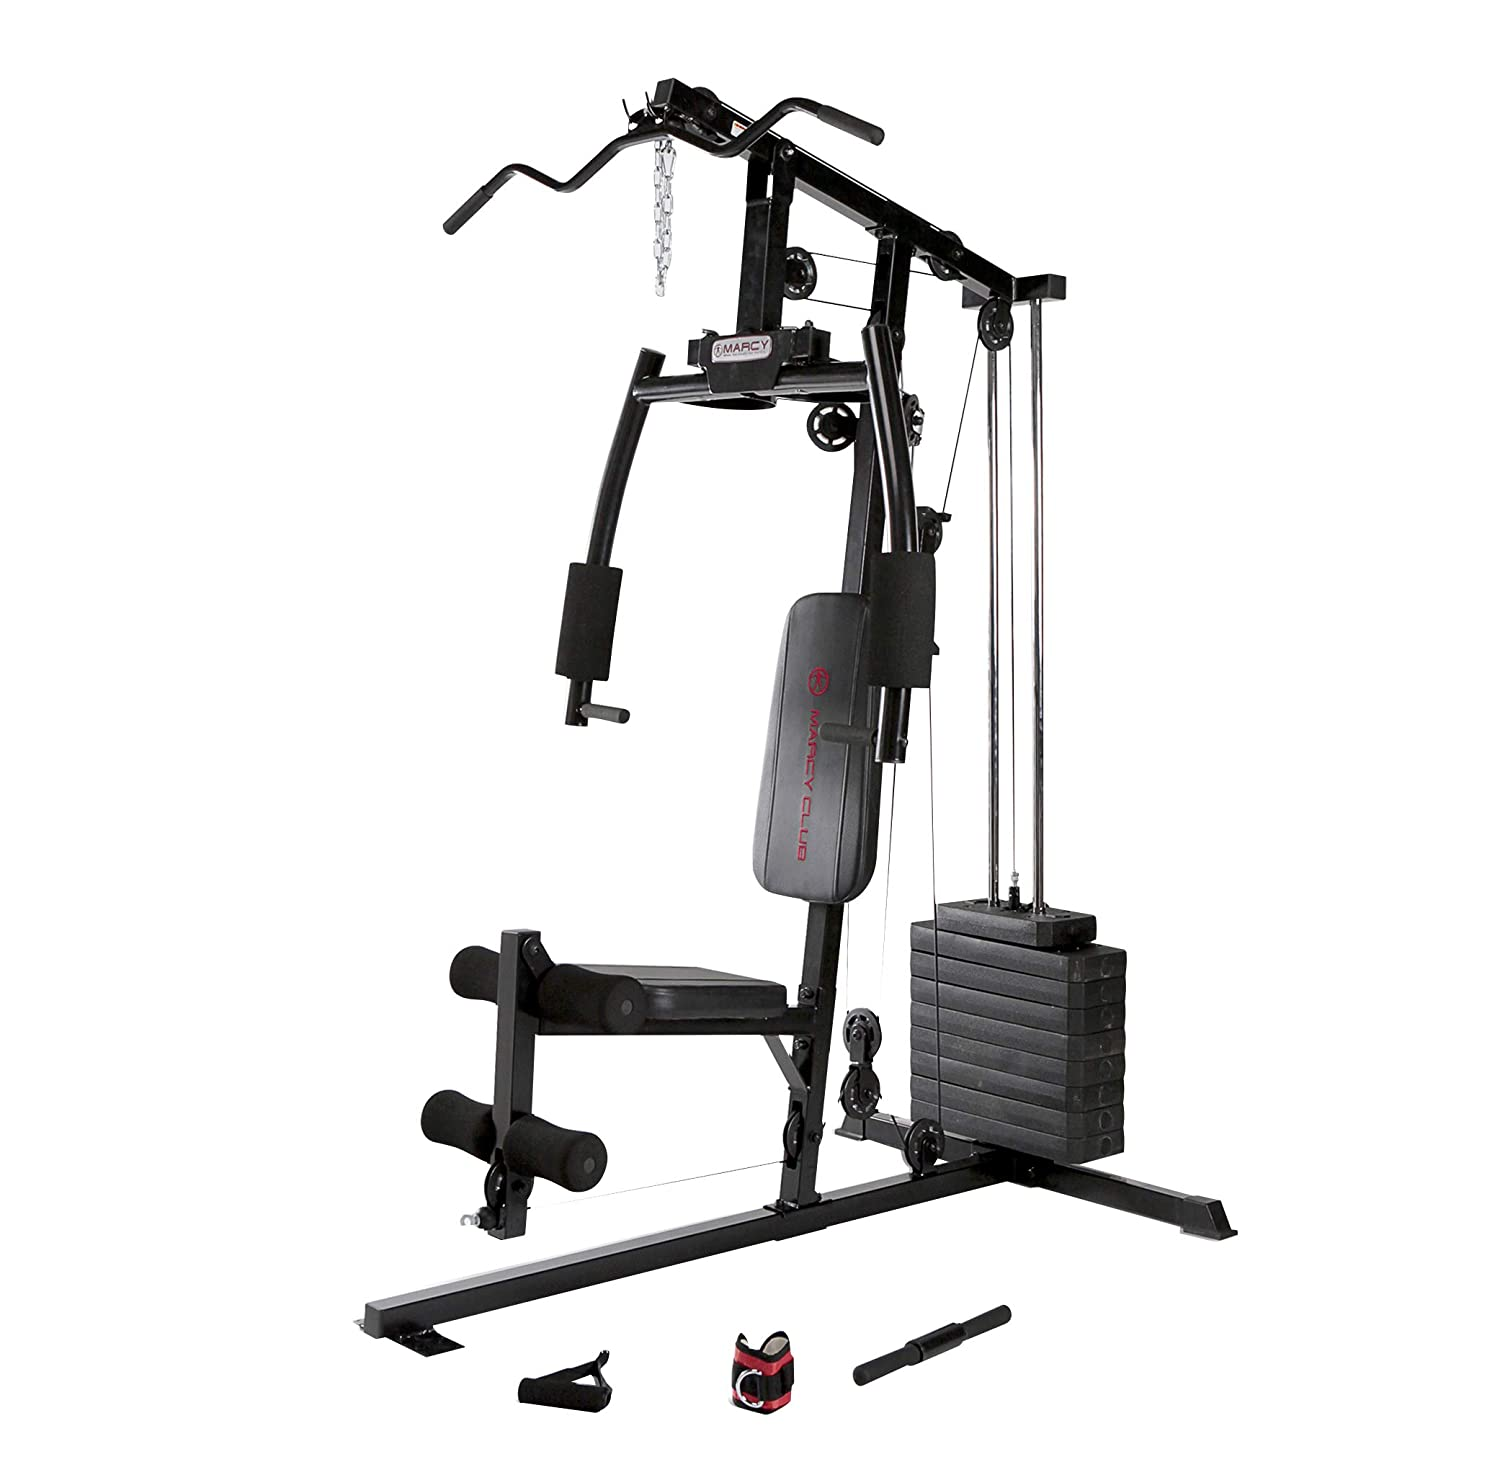 Amazon.com : marcy 120 lb. single stack home gym with pulley press